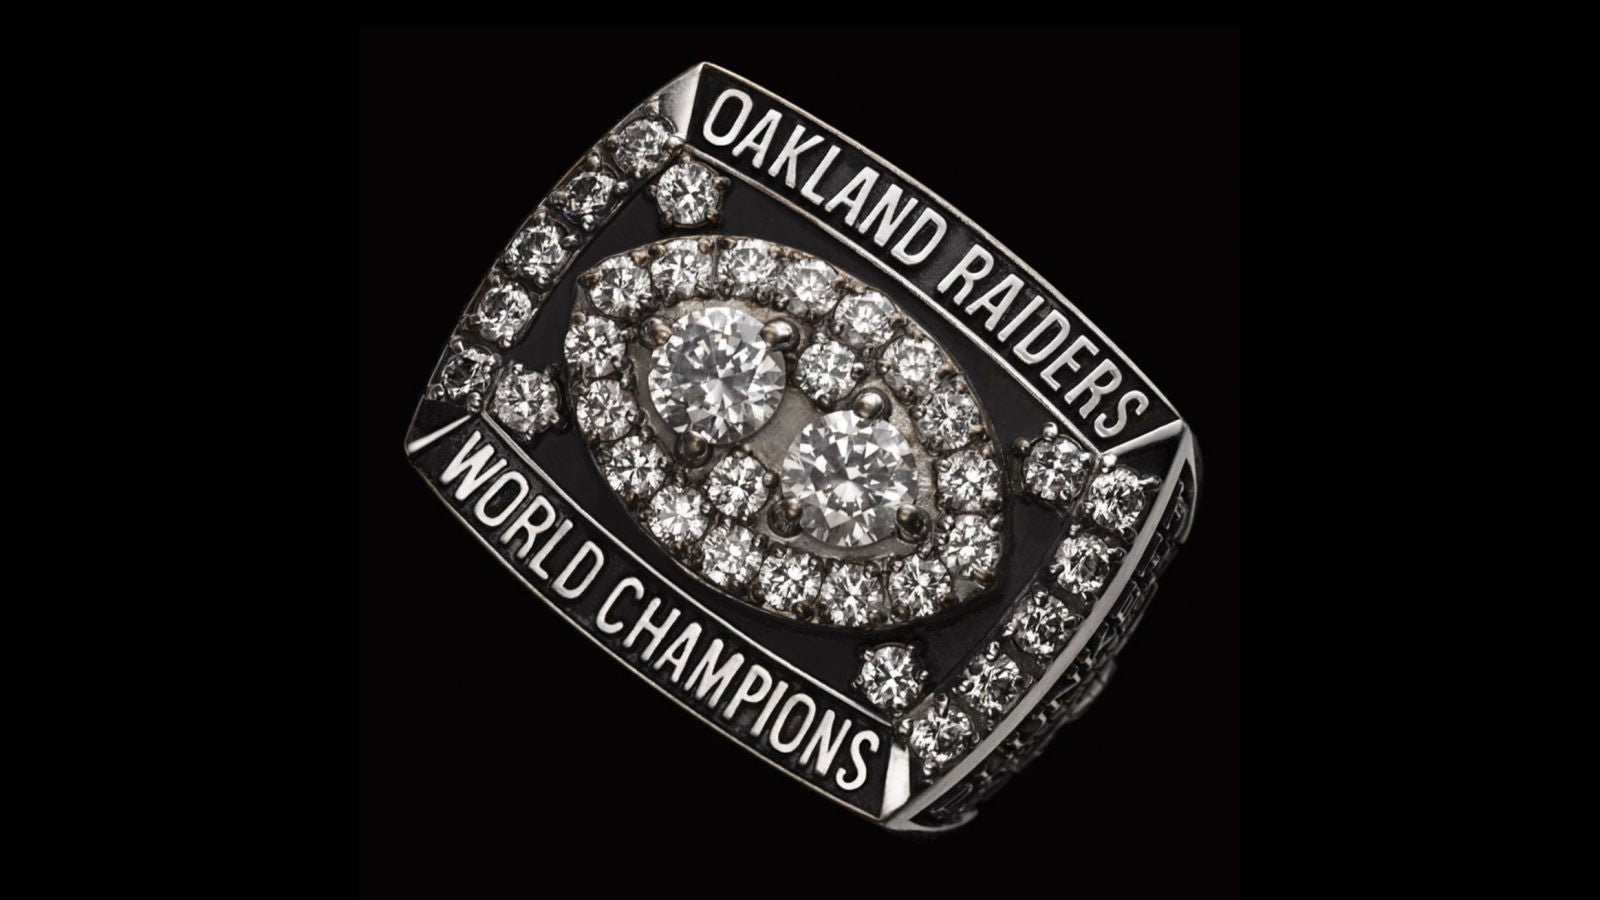 1980 Oakland Raiders Super Bowl Championship Ring